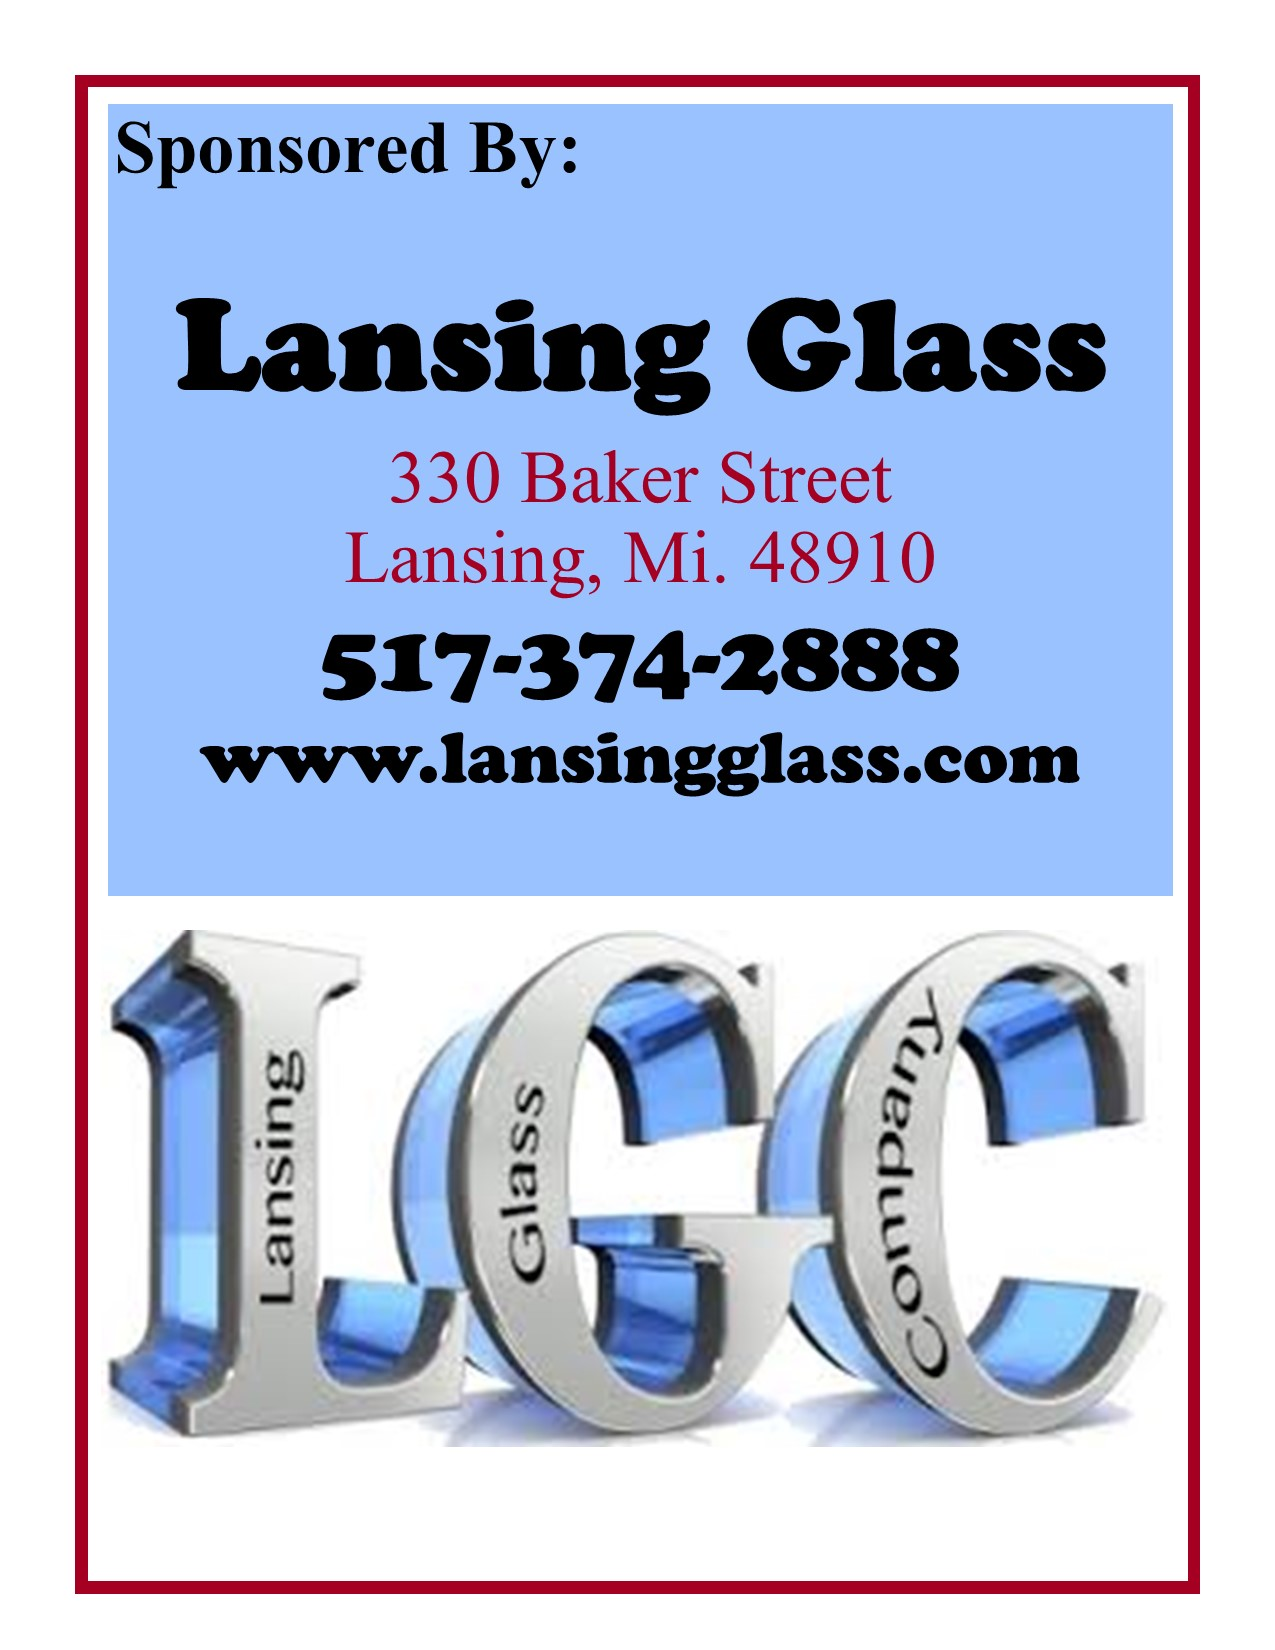 lansing glass